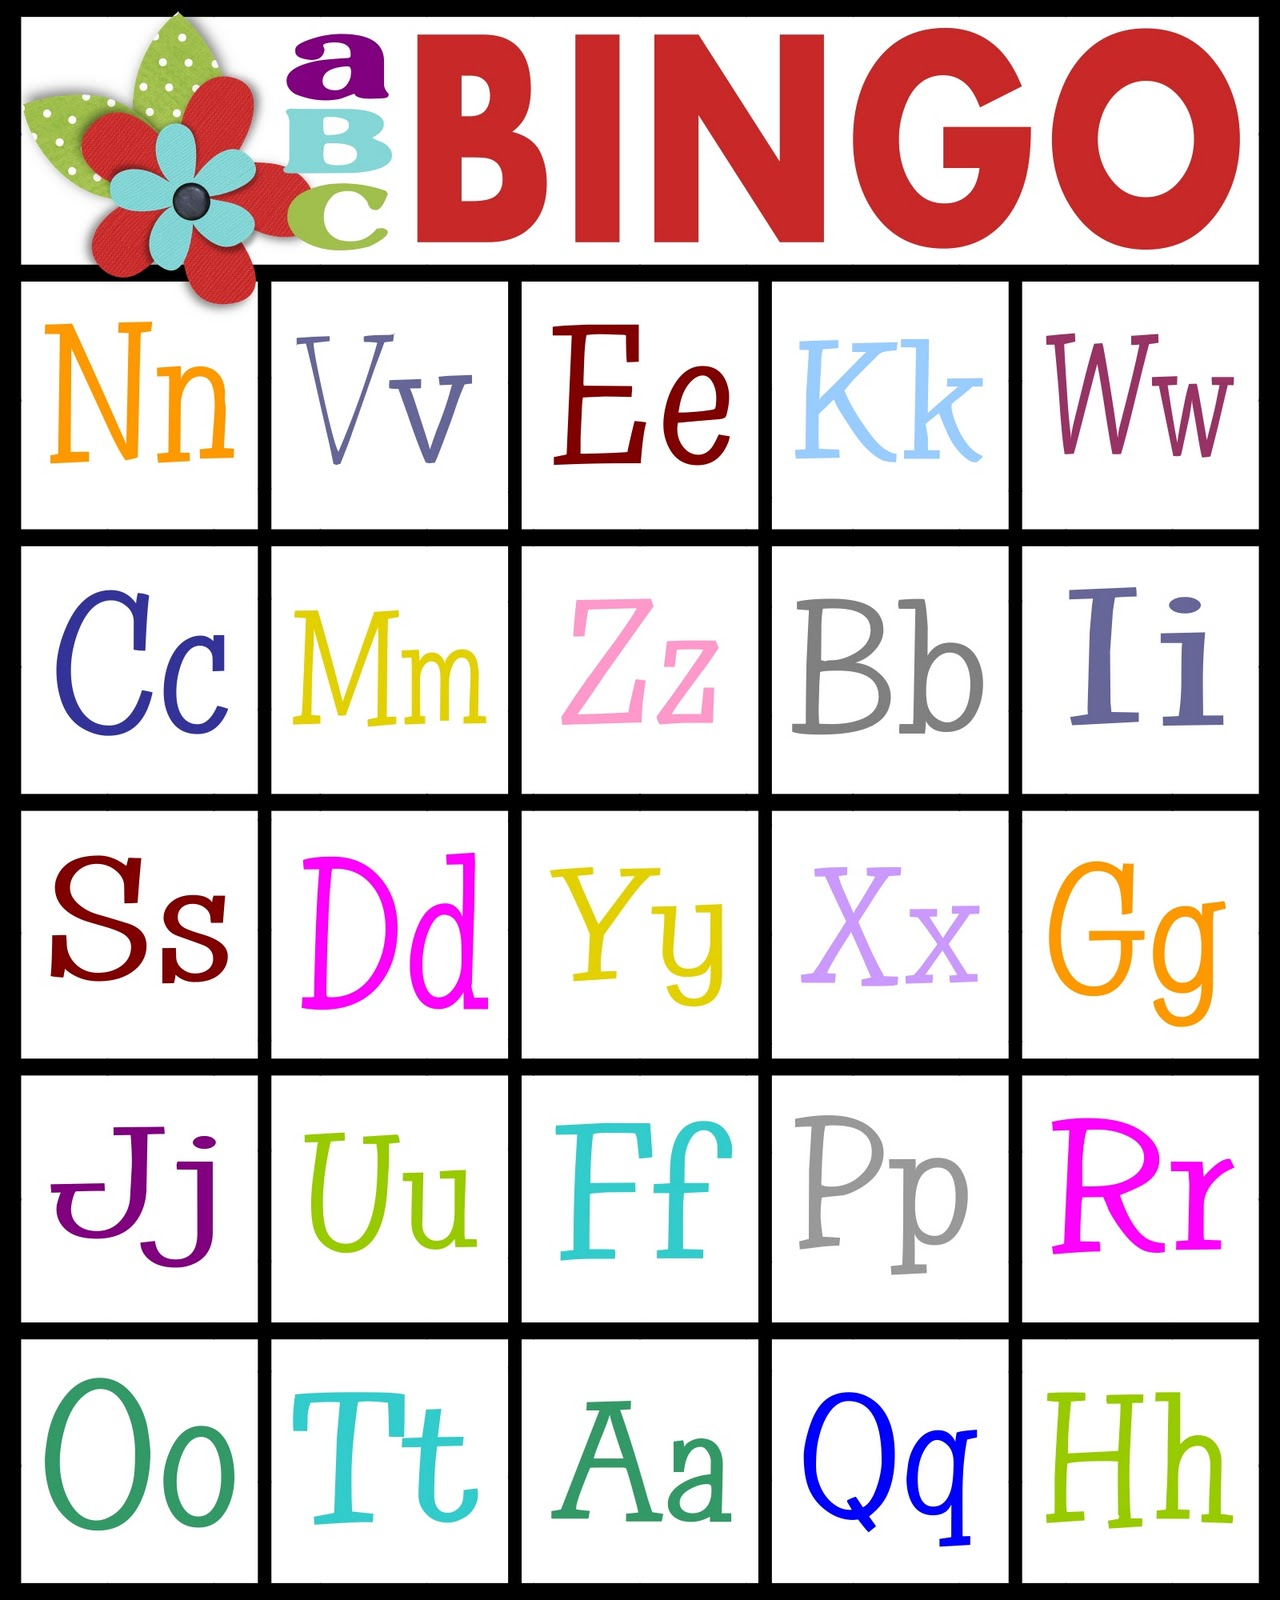 Sassy Sanctuary: Abc's Bingo- Free Printable! with Alphabet Bingo Worksheets